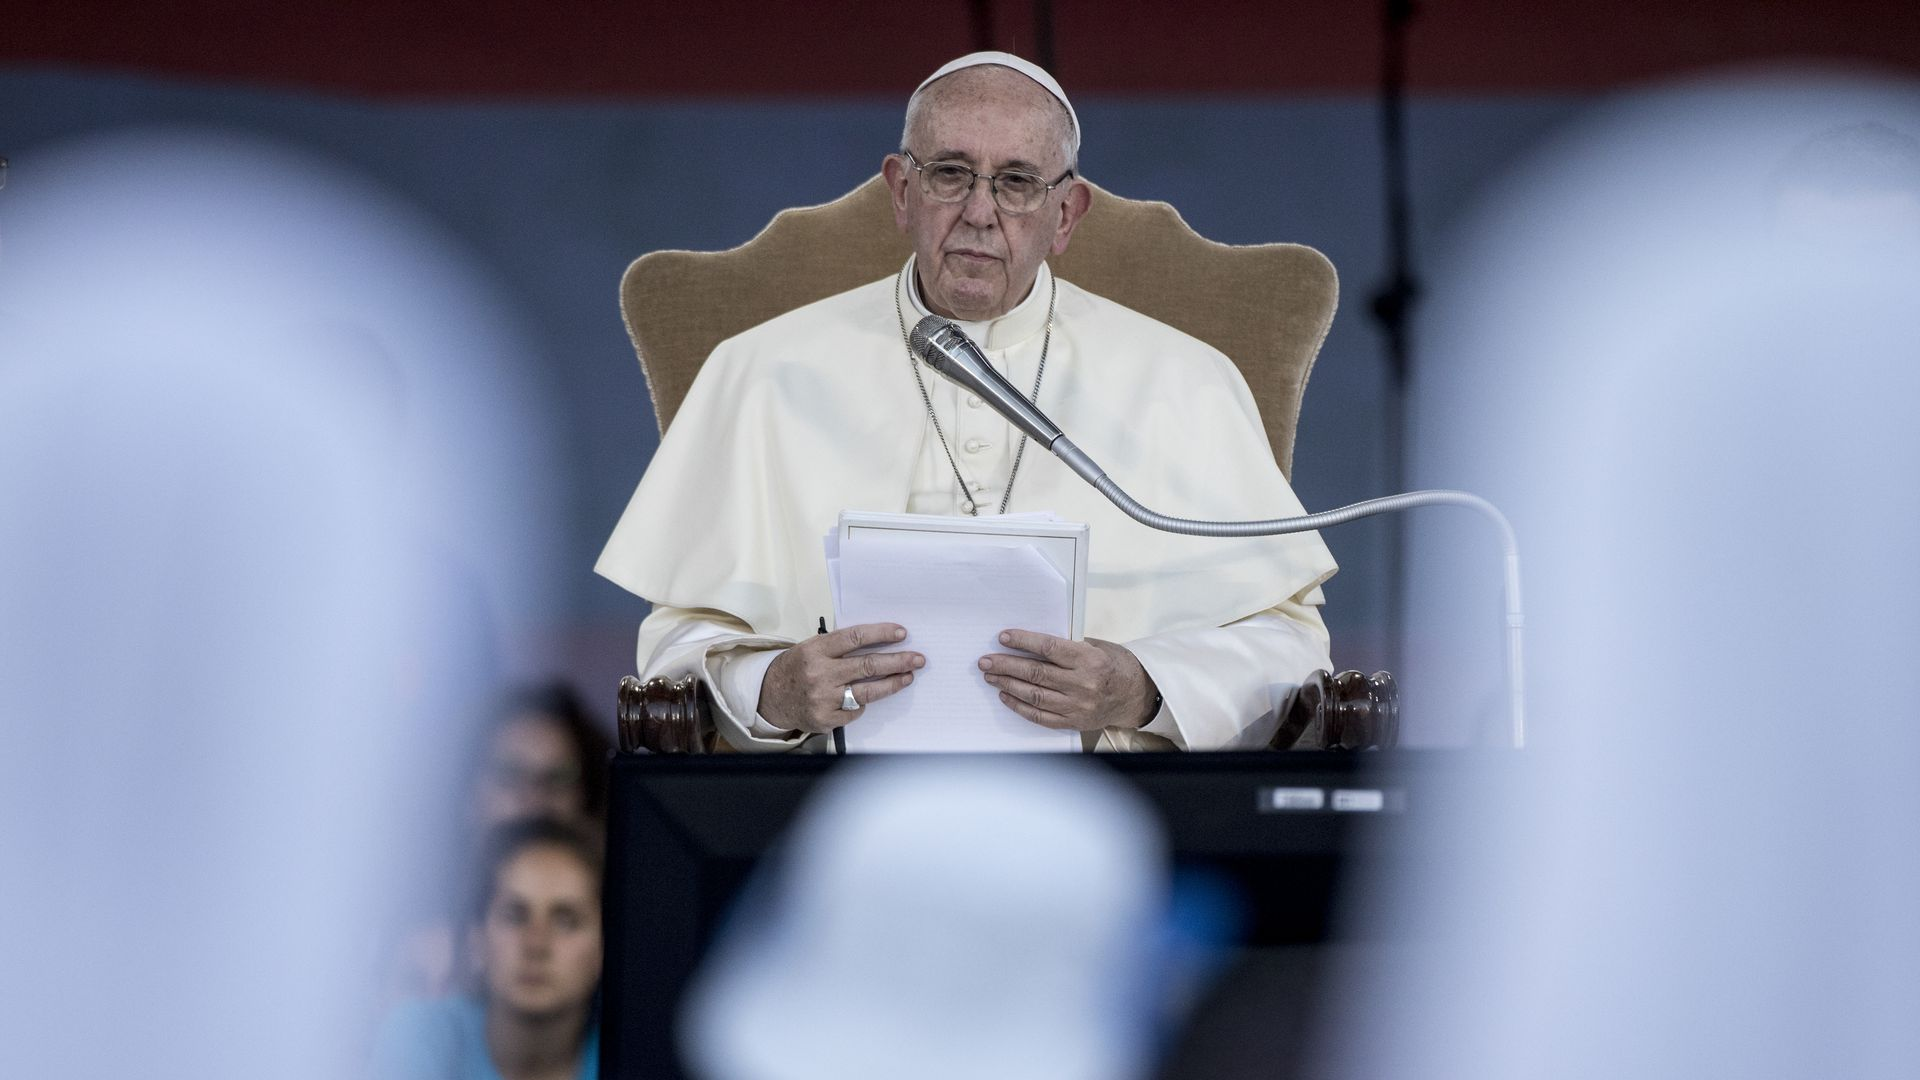 Pope Francis sitting at a mic but not talking